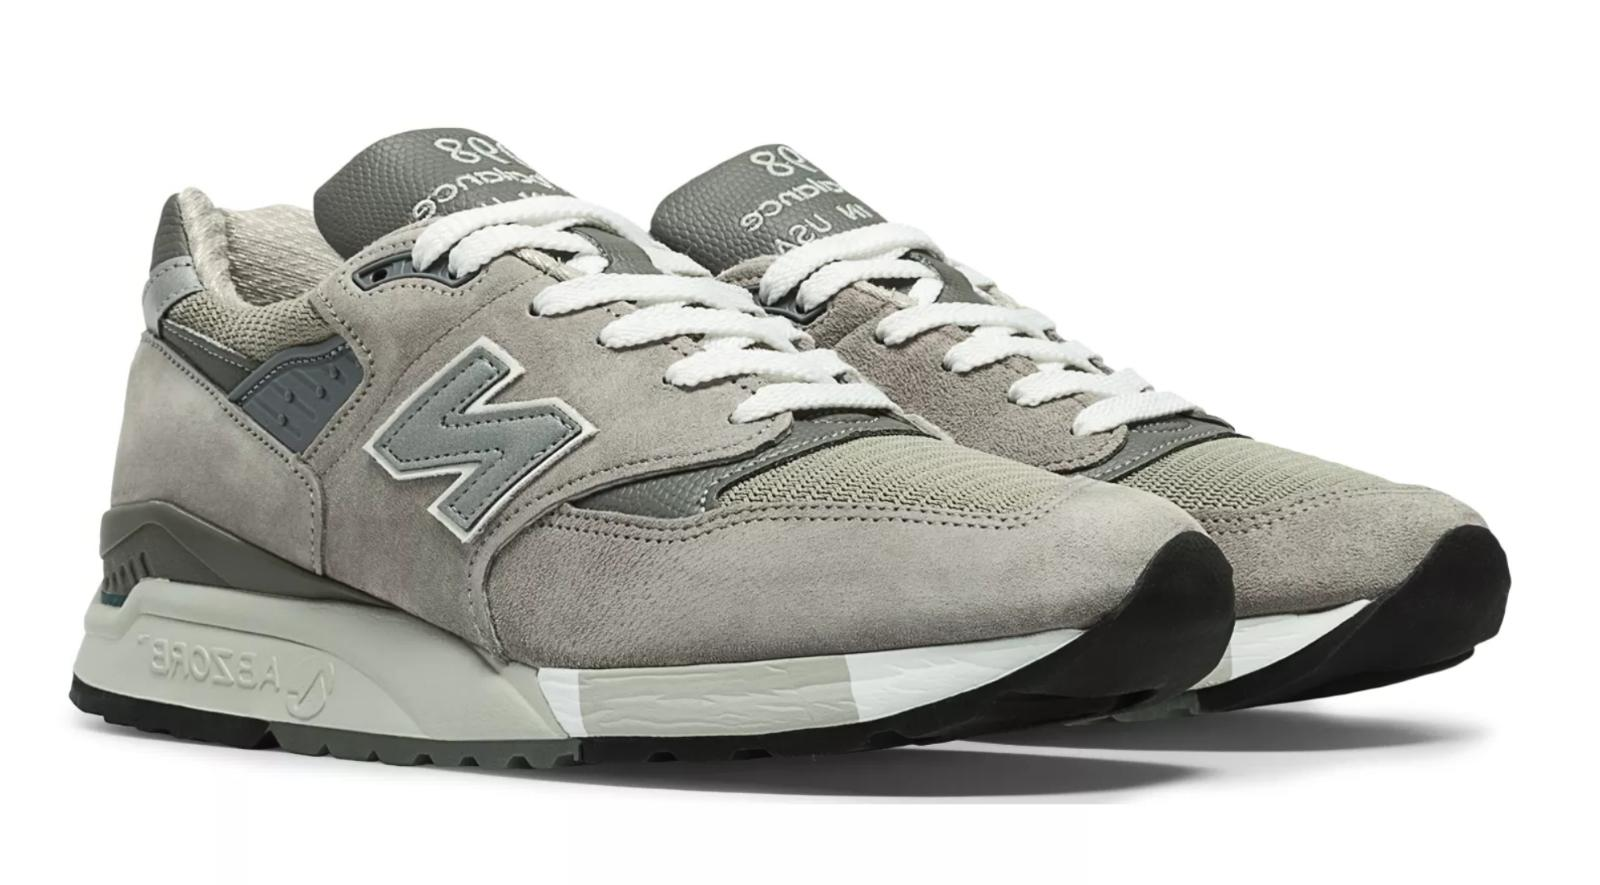 New Men's New Balance 998 USA Shoes Sneakers 11.5